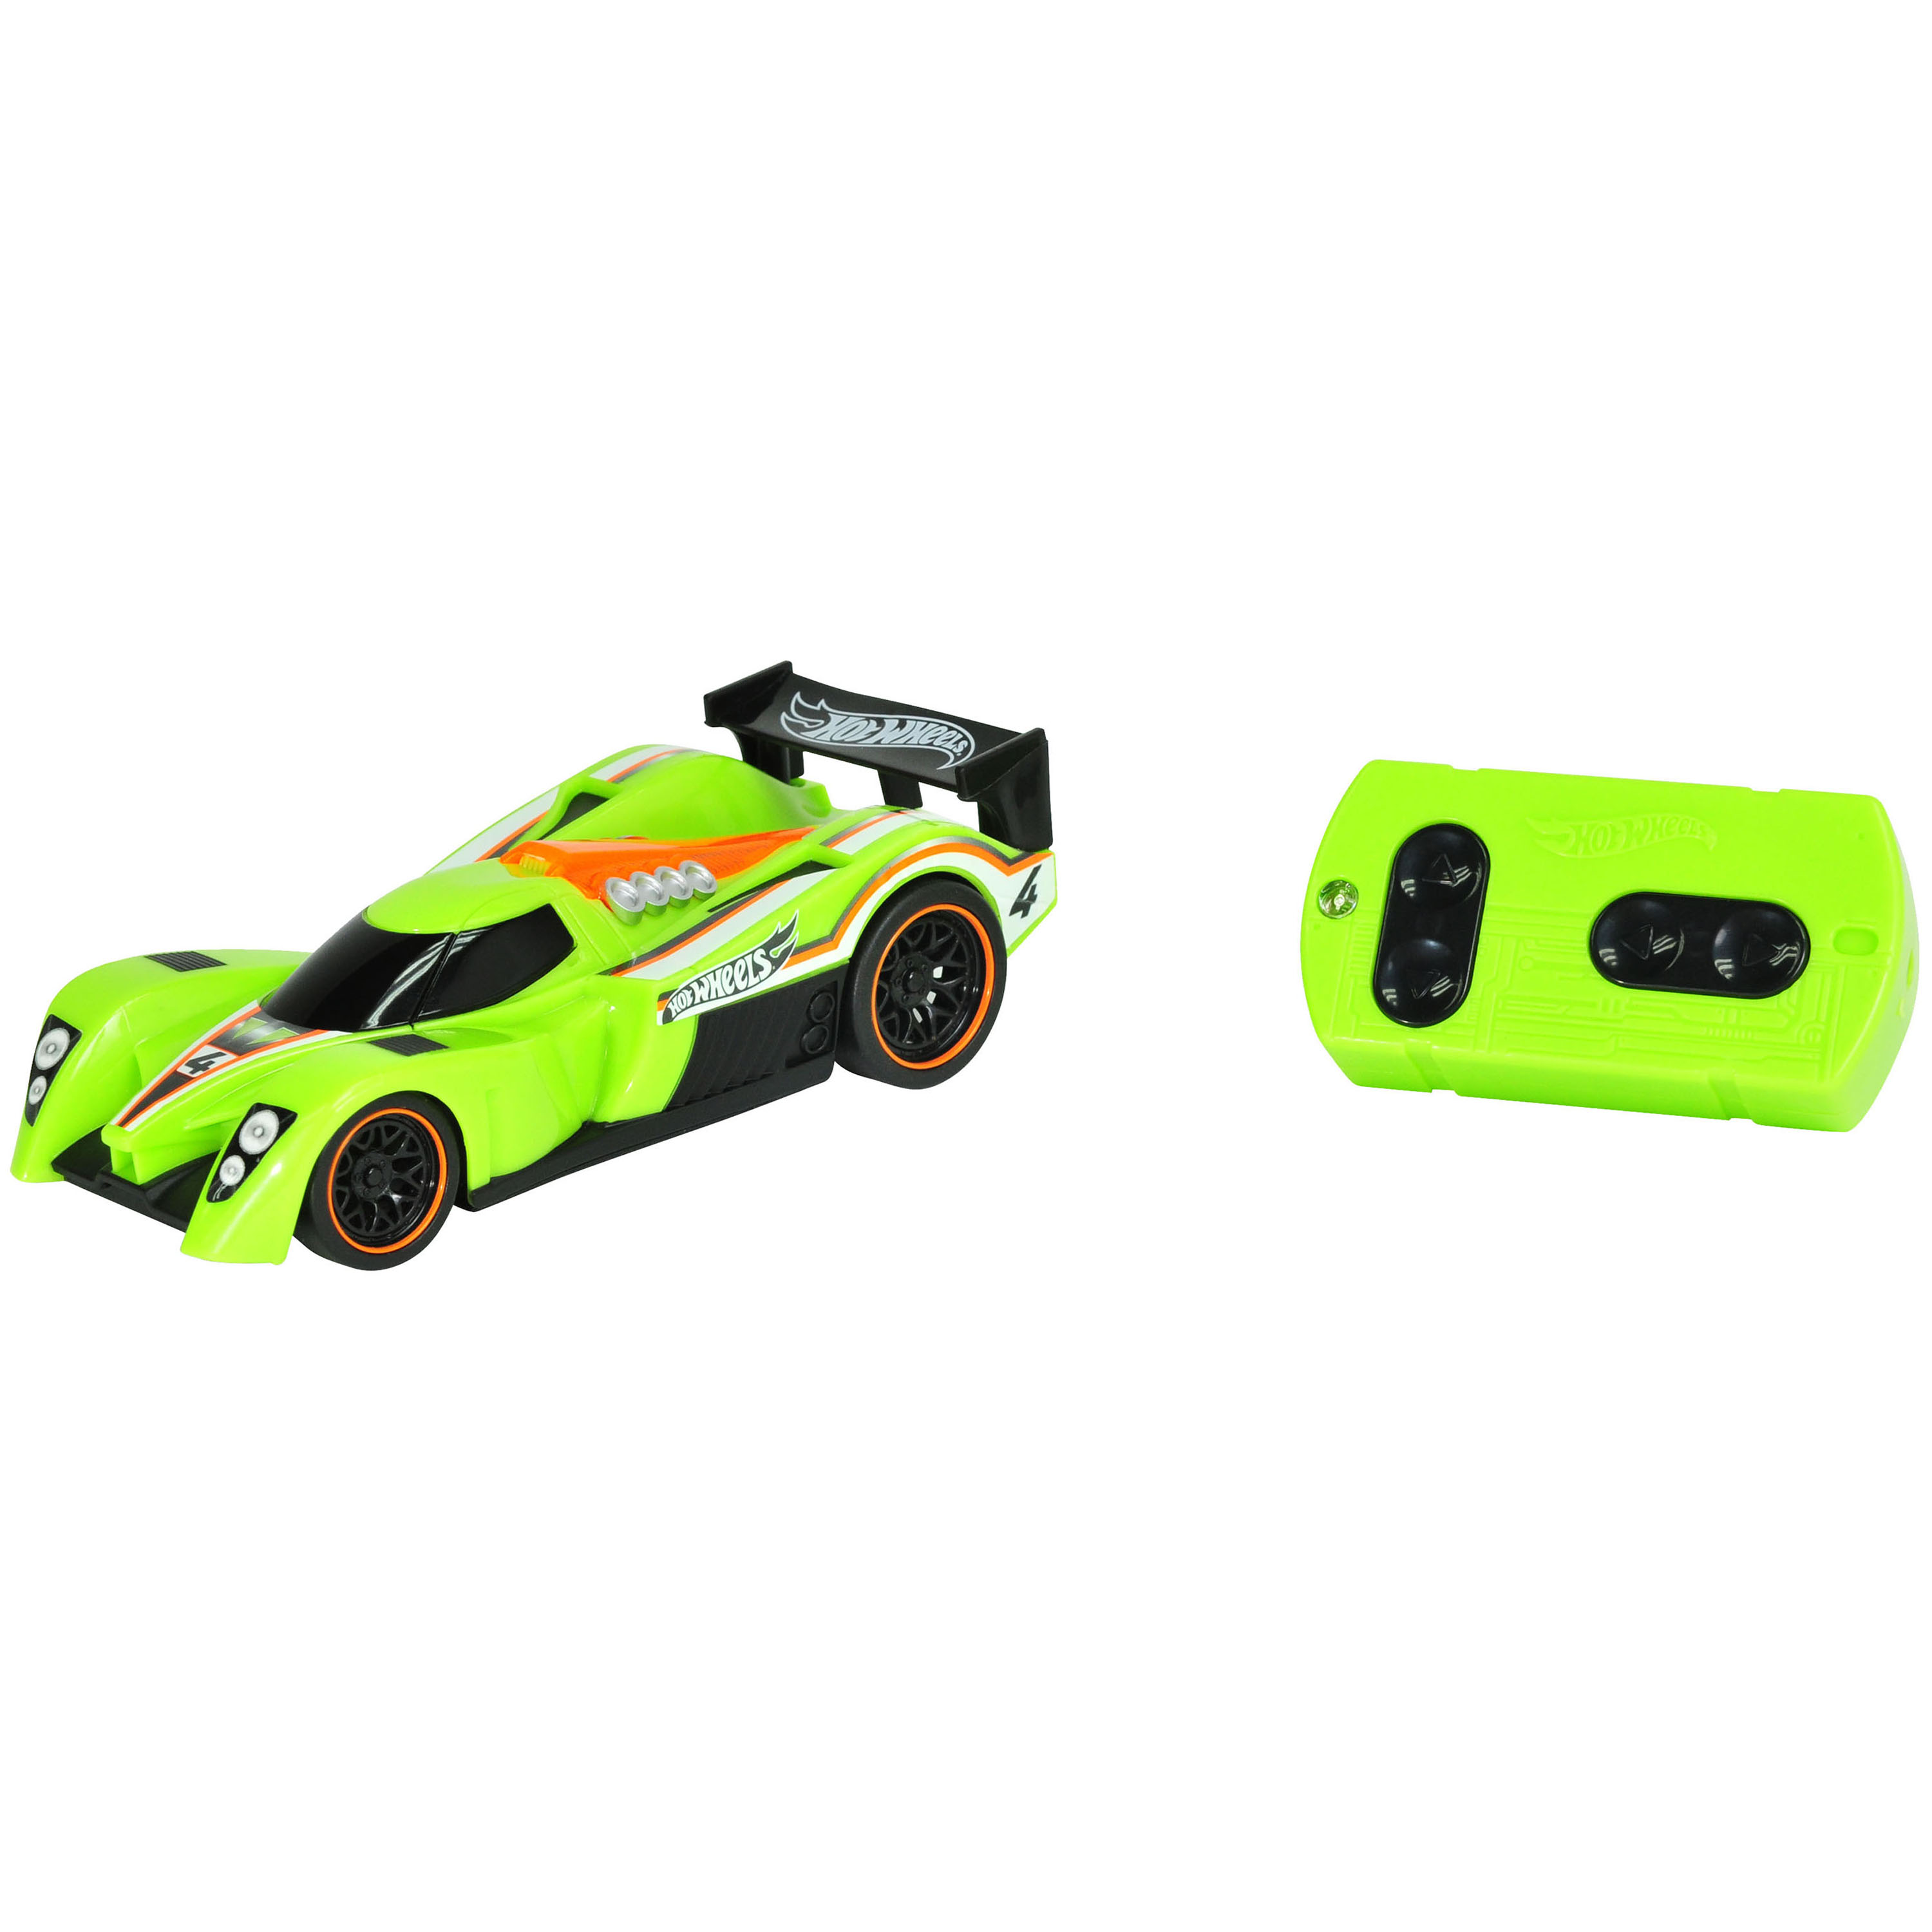 The Hot Wheels Energy Rc Box 24 Ours Walmart Com